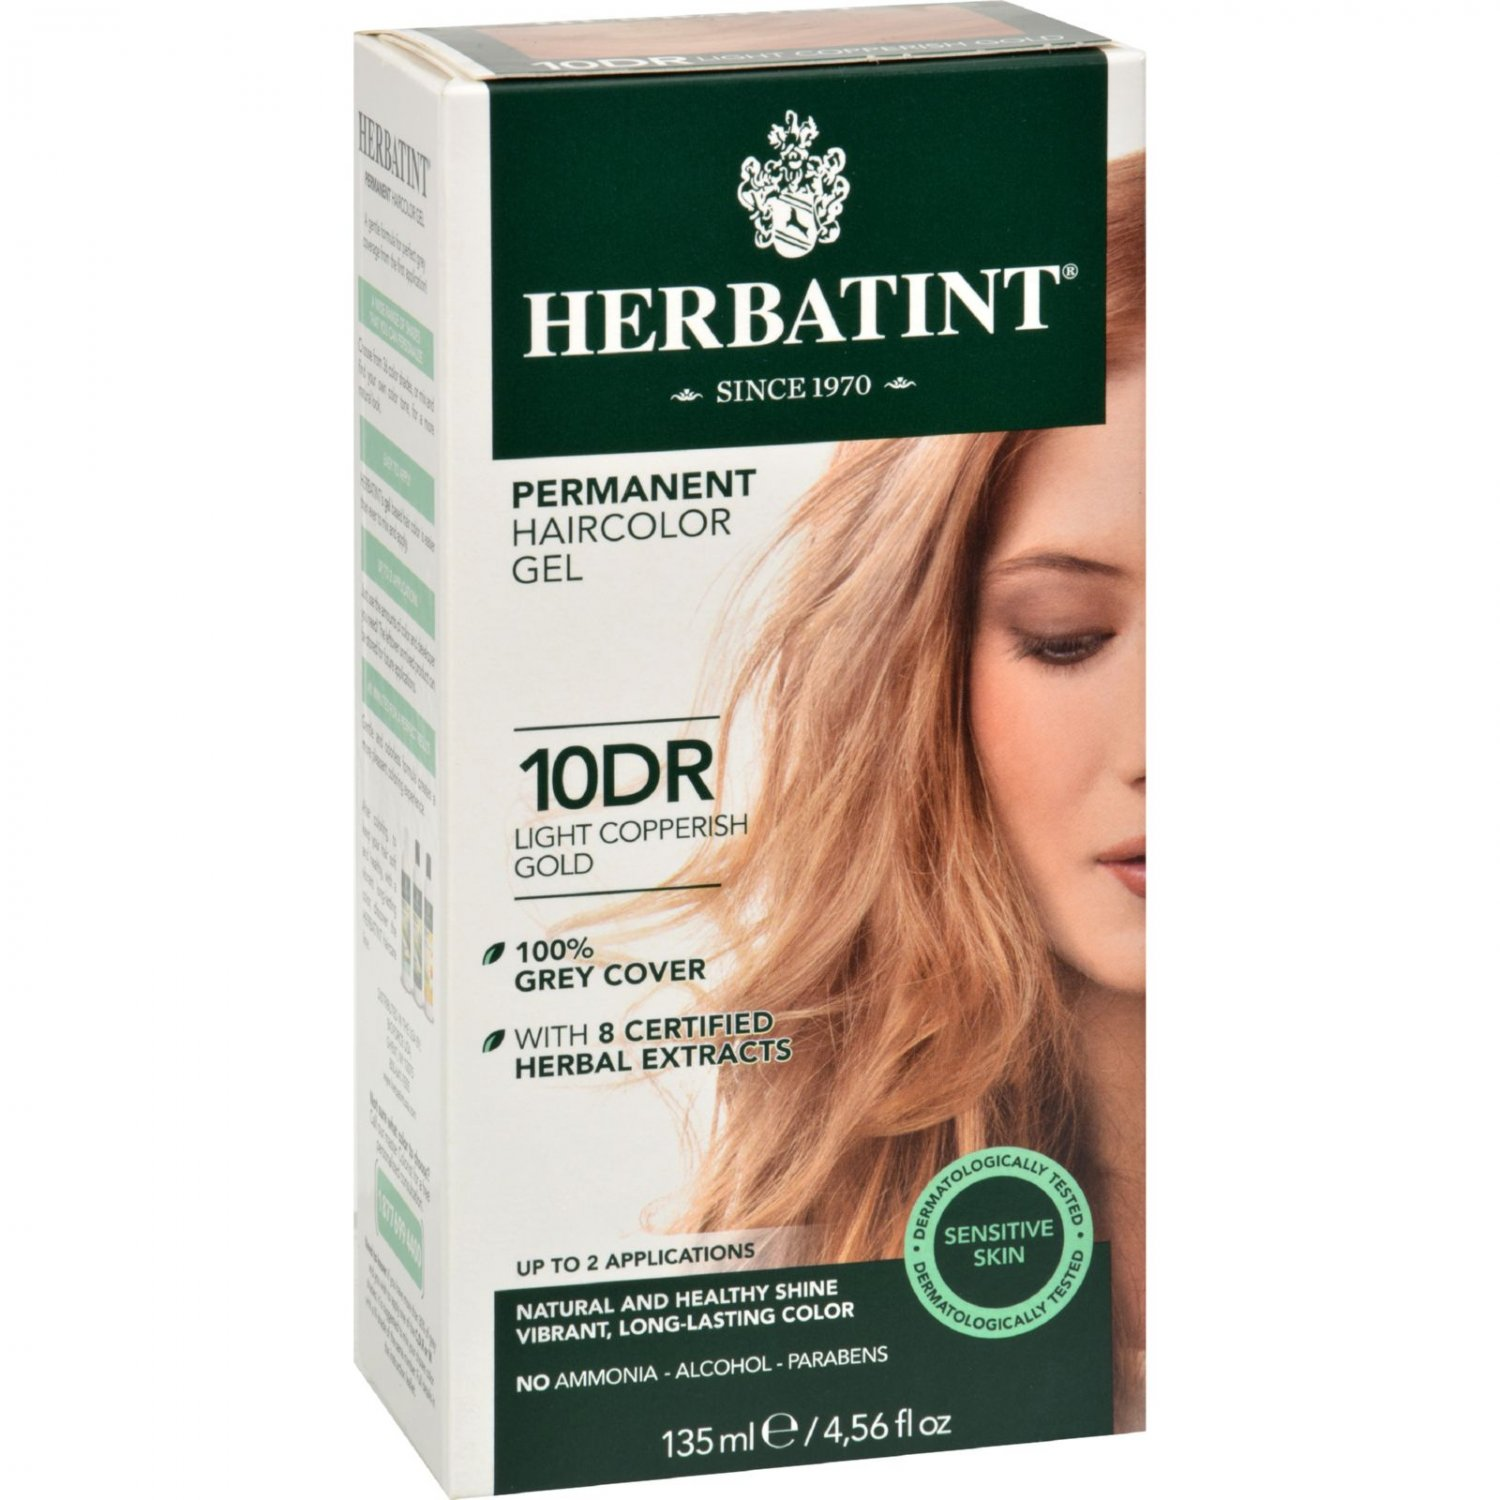 Herbatint Permanent Herbal Haircolour Gel 10 DR Light Copperish Gold - 135 ml